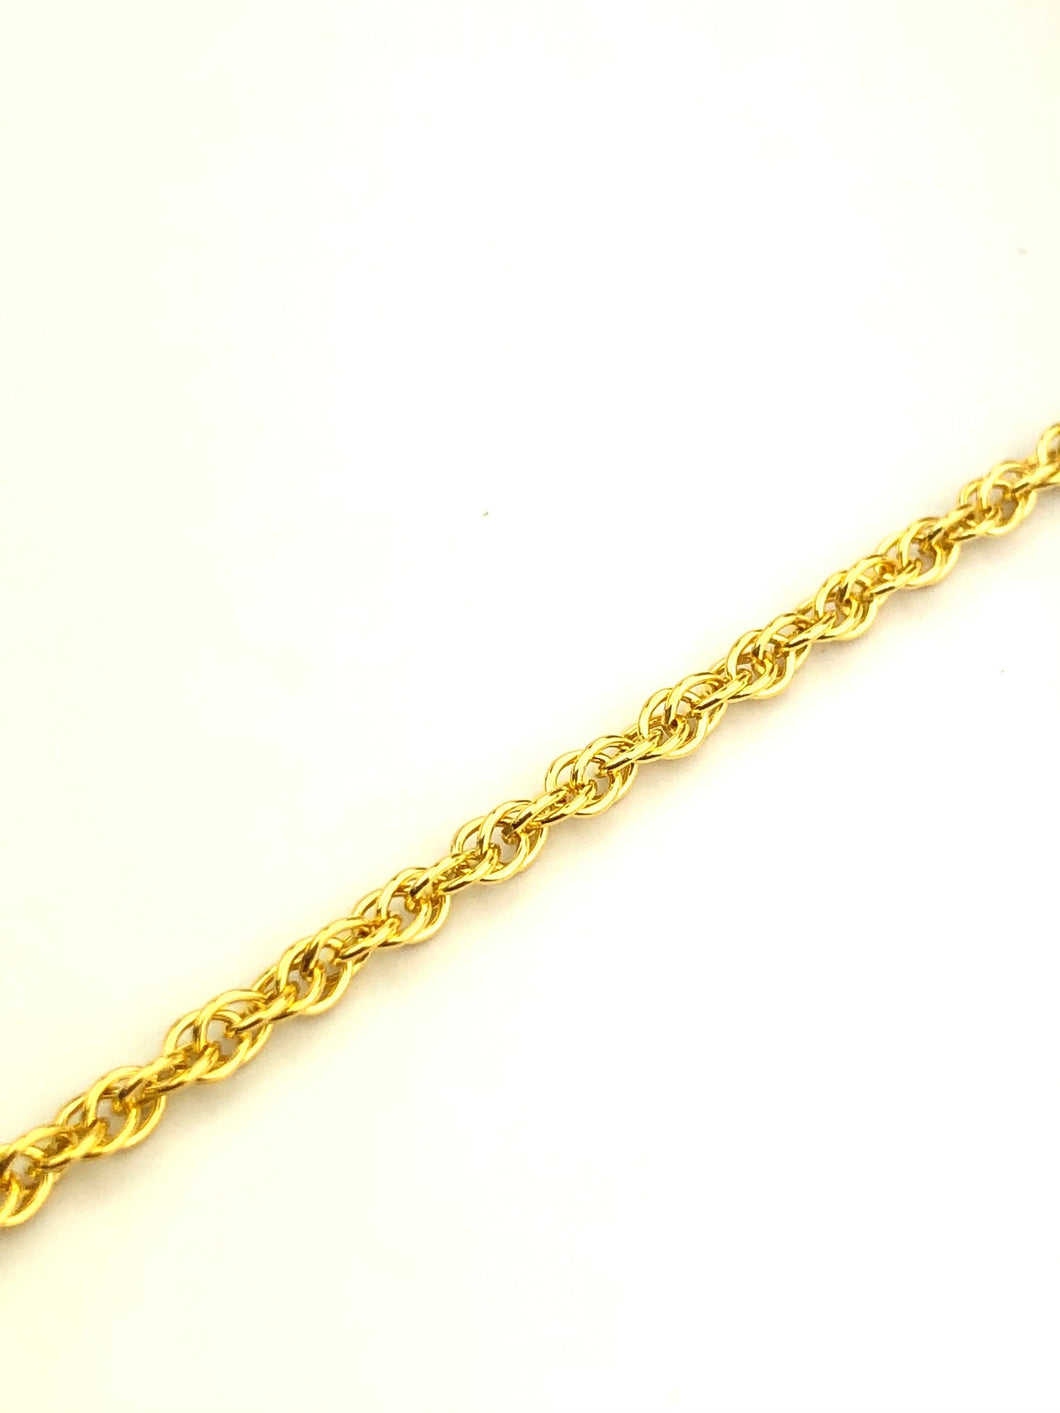 14KGF 1.9mm Double Rope Chain Sku#19R